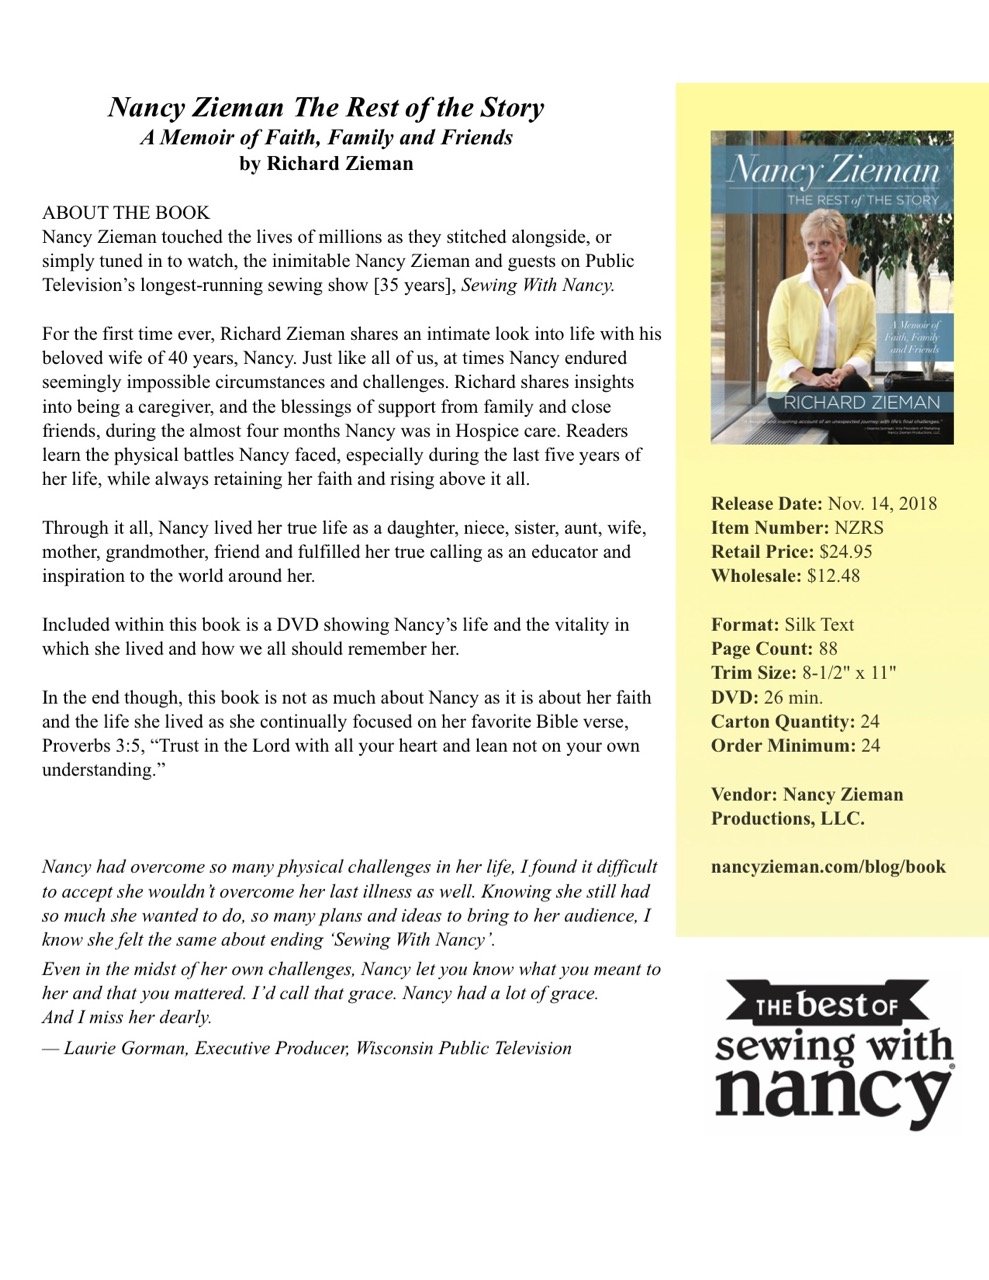 Nancy Zieman the Rest of the Story - A Memoir of Faith Family and Friends available at Nancy Zieman Productions and ShopNZP.com